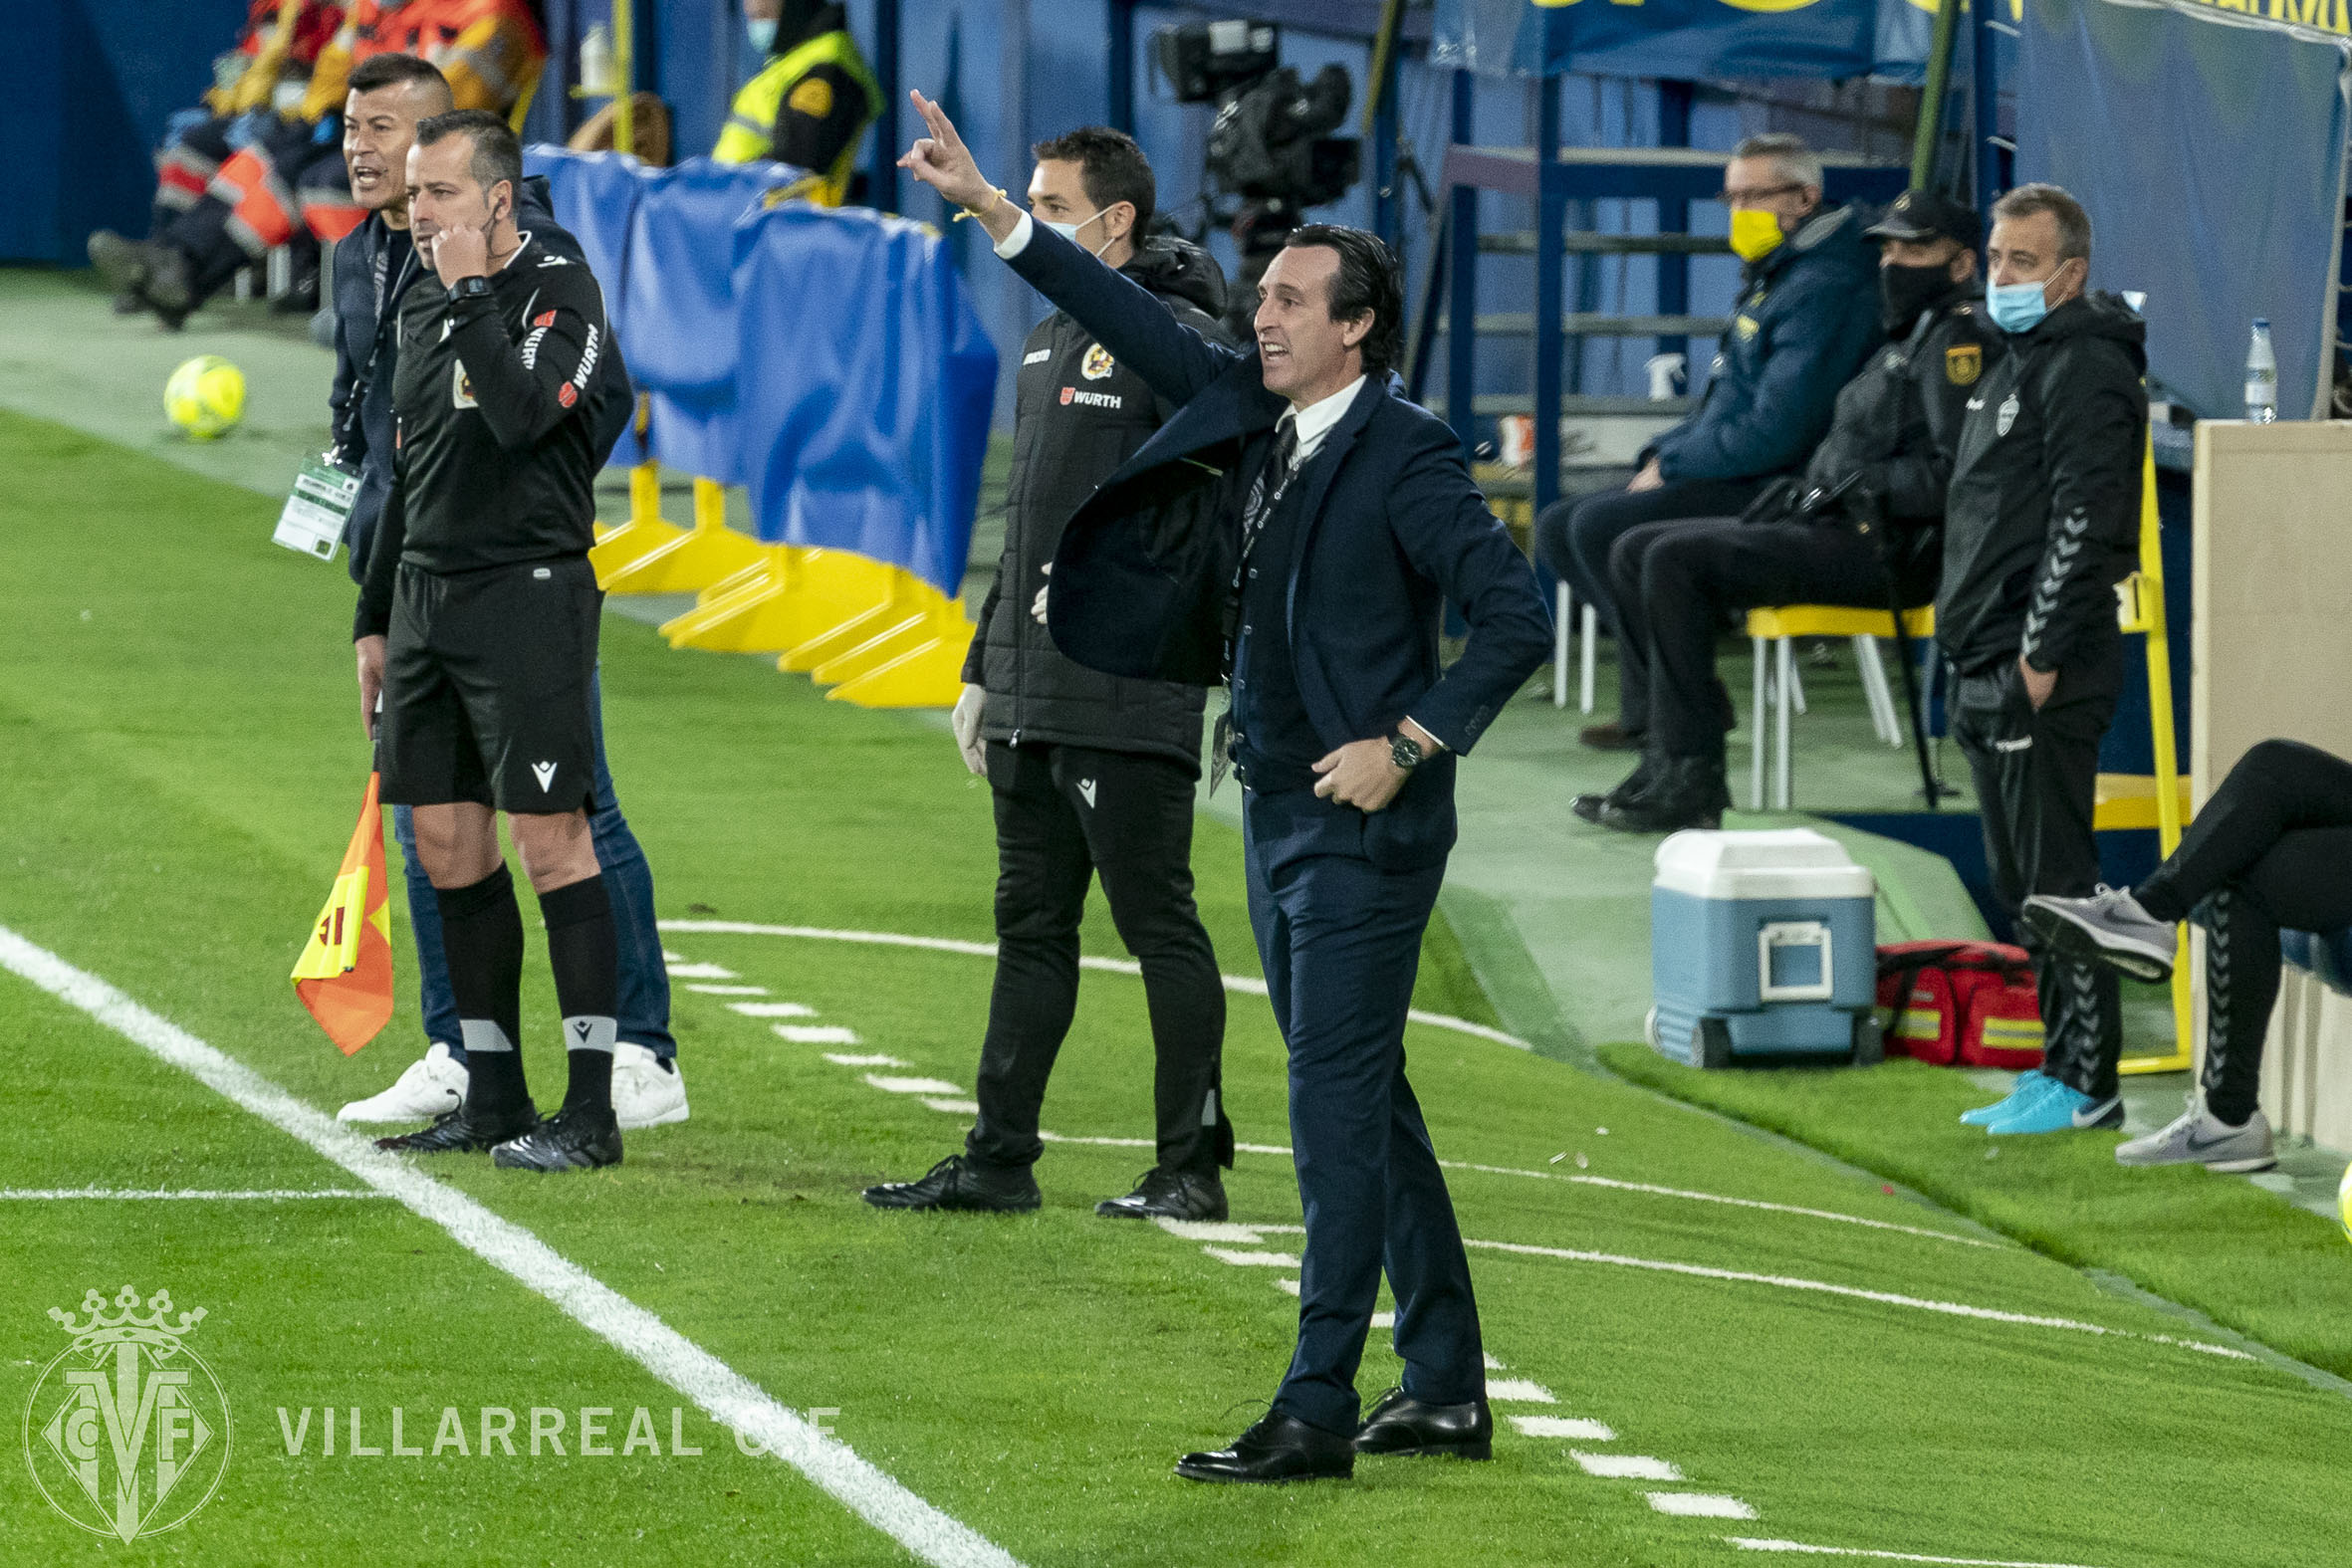 Villarreal and Athletic Club unable to be separated at La Ceramica